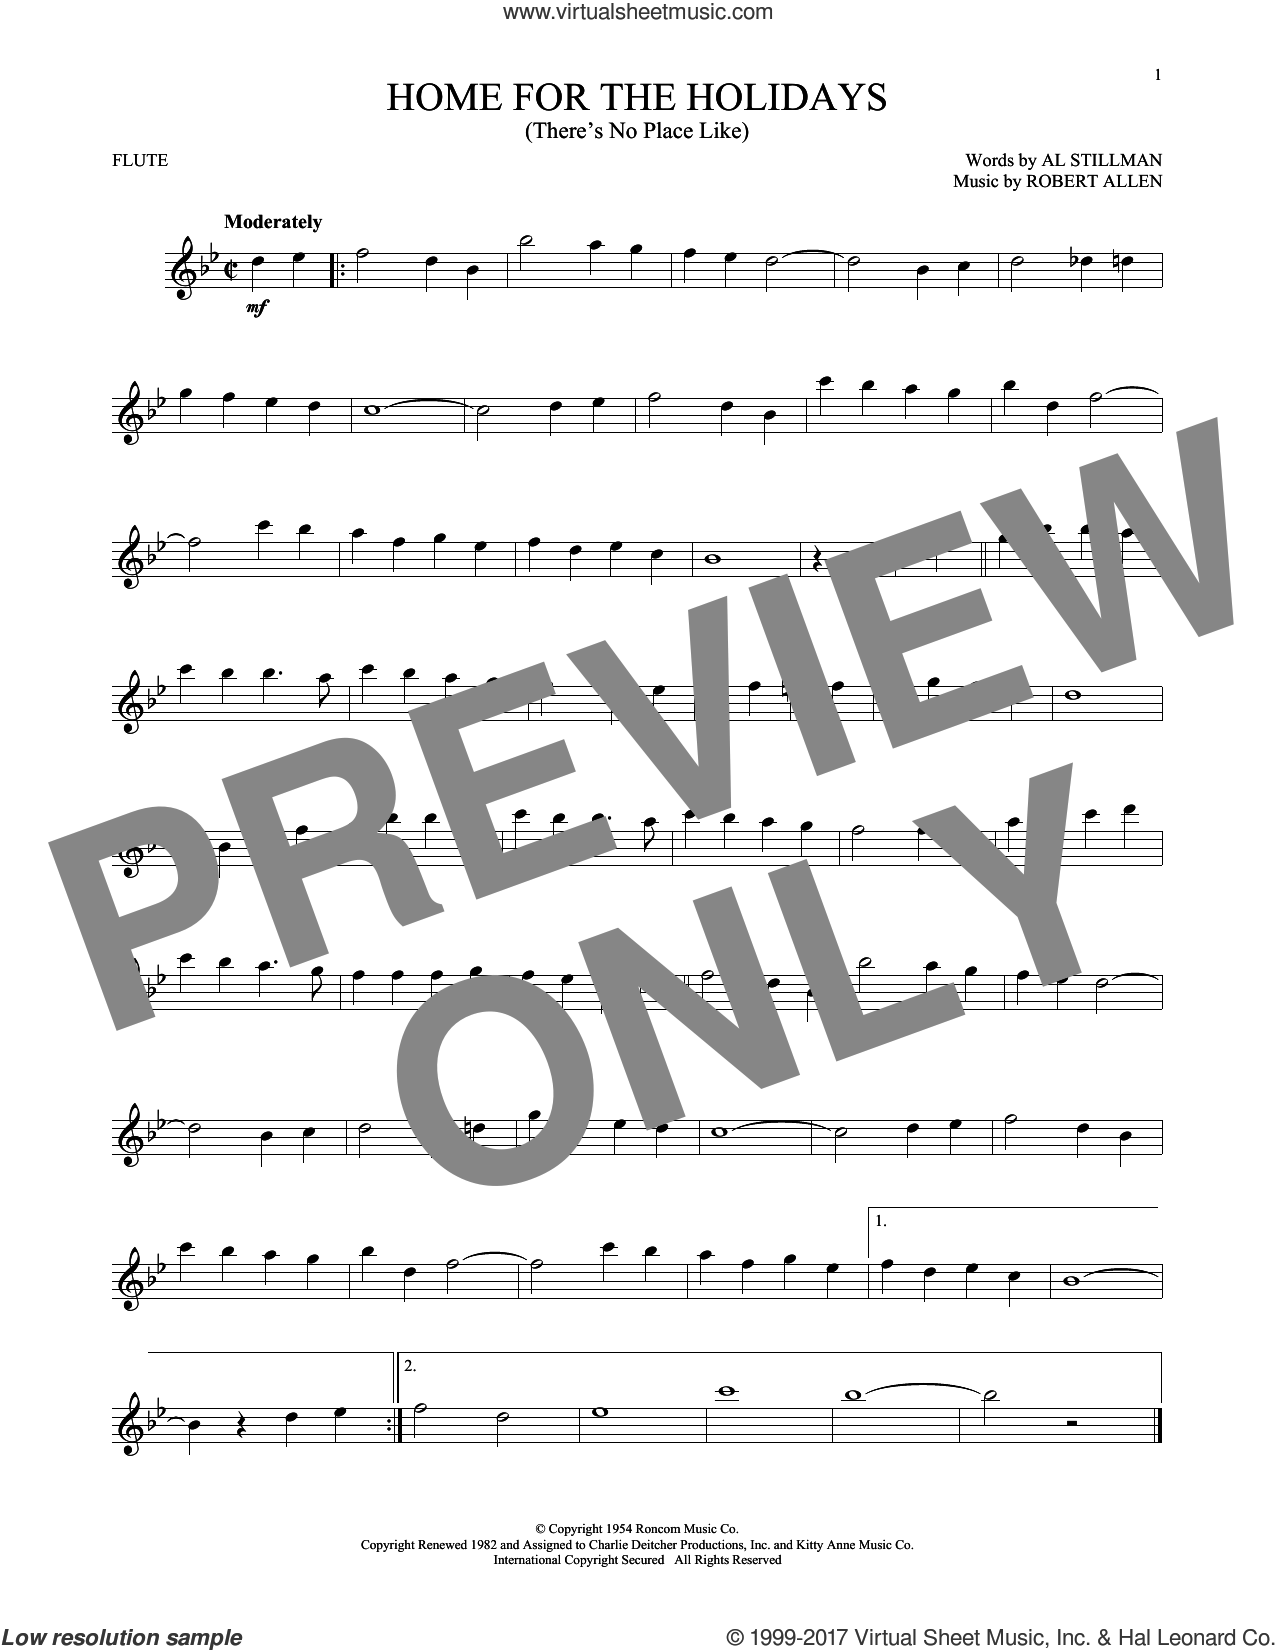 (There's No Place Like) Home For The Holidays sheet music for flute solo by Perry Como, Al Stillman and Robert Allen, intermediate skill level